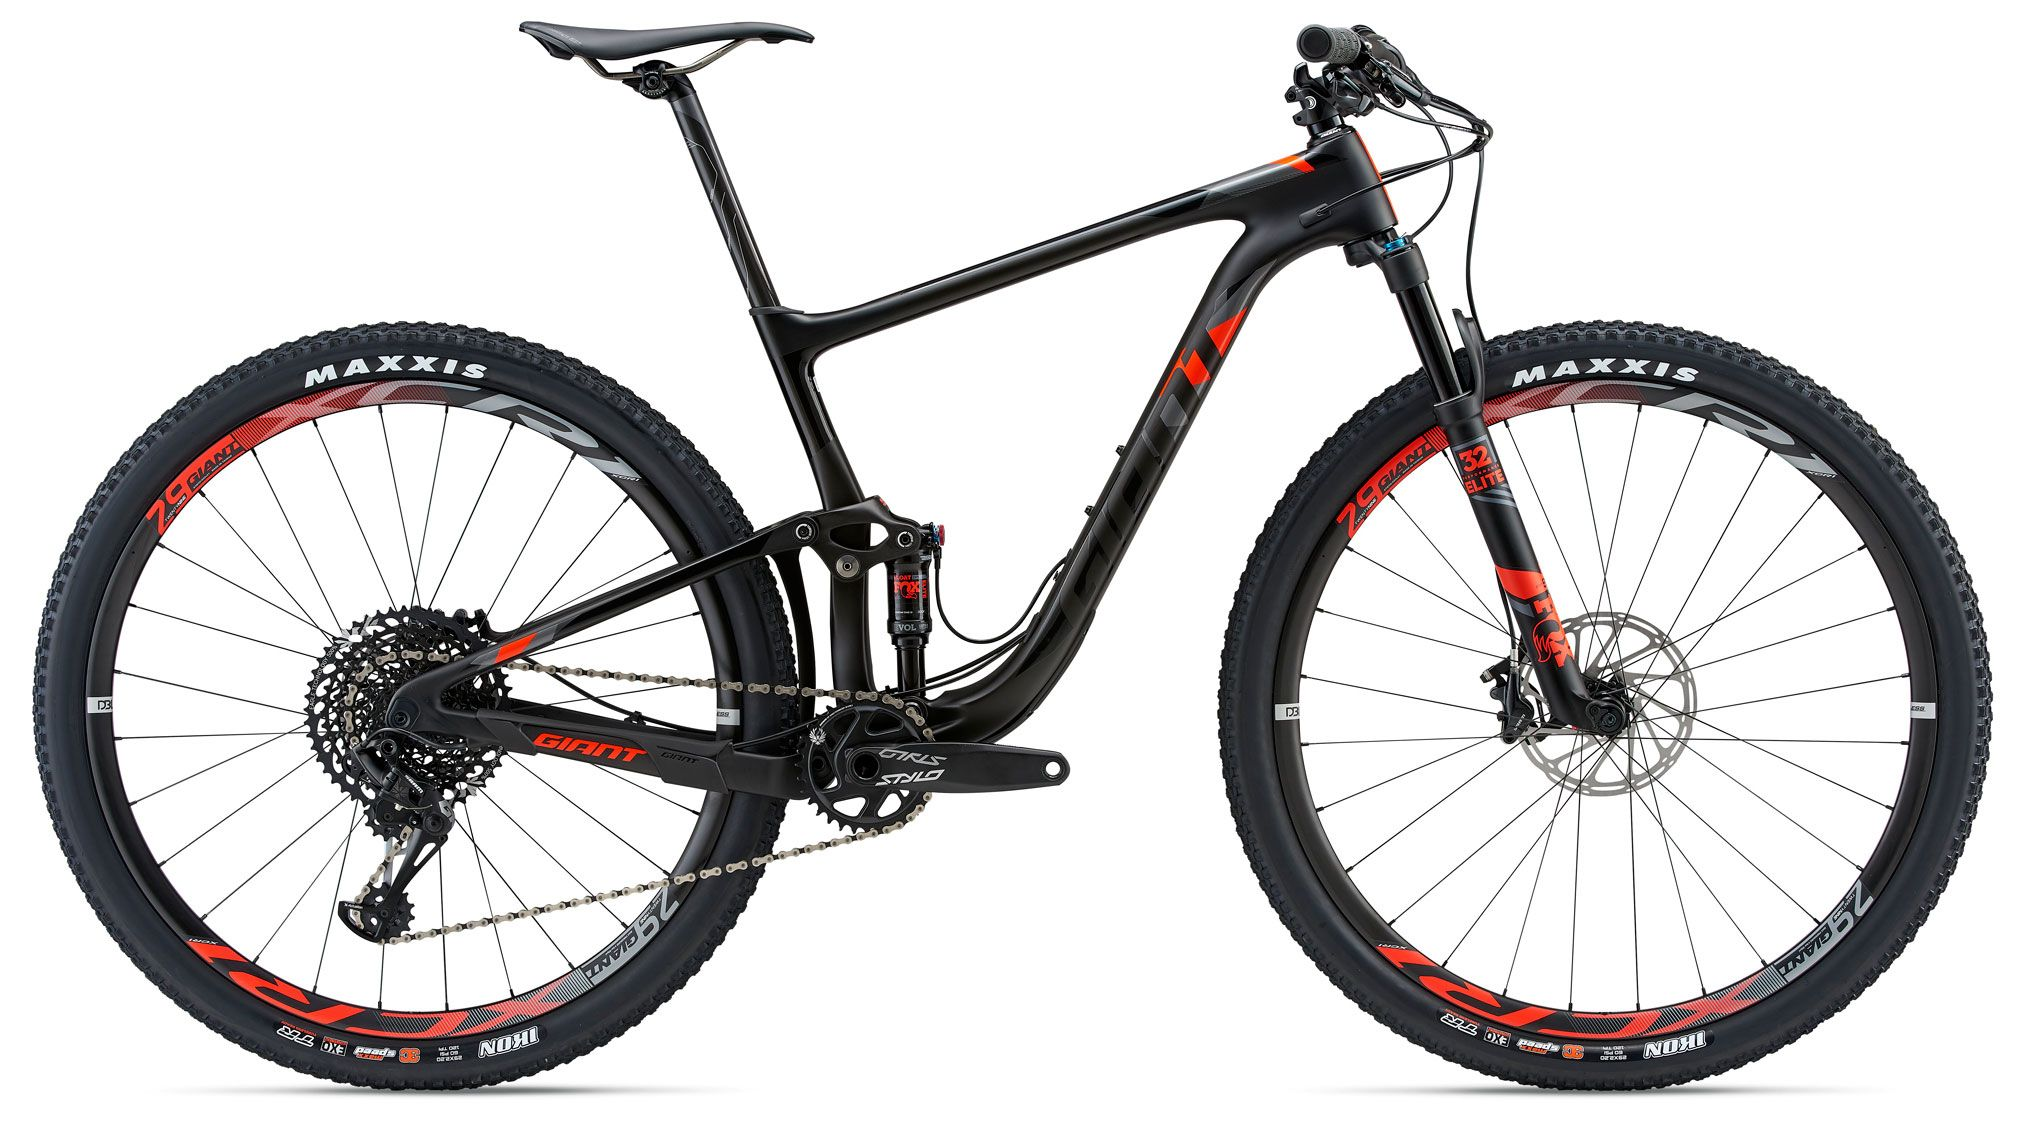 Велосипед Giant Anthem Advanced Pro 29er 1 2018 велосипед giant talon 29er 2 blk 2014